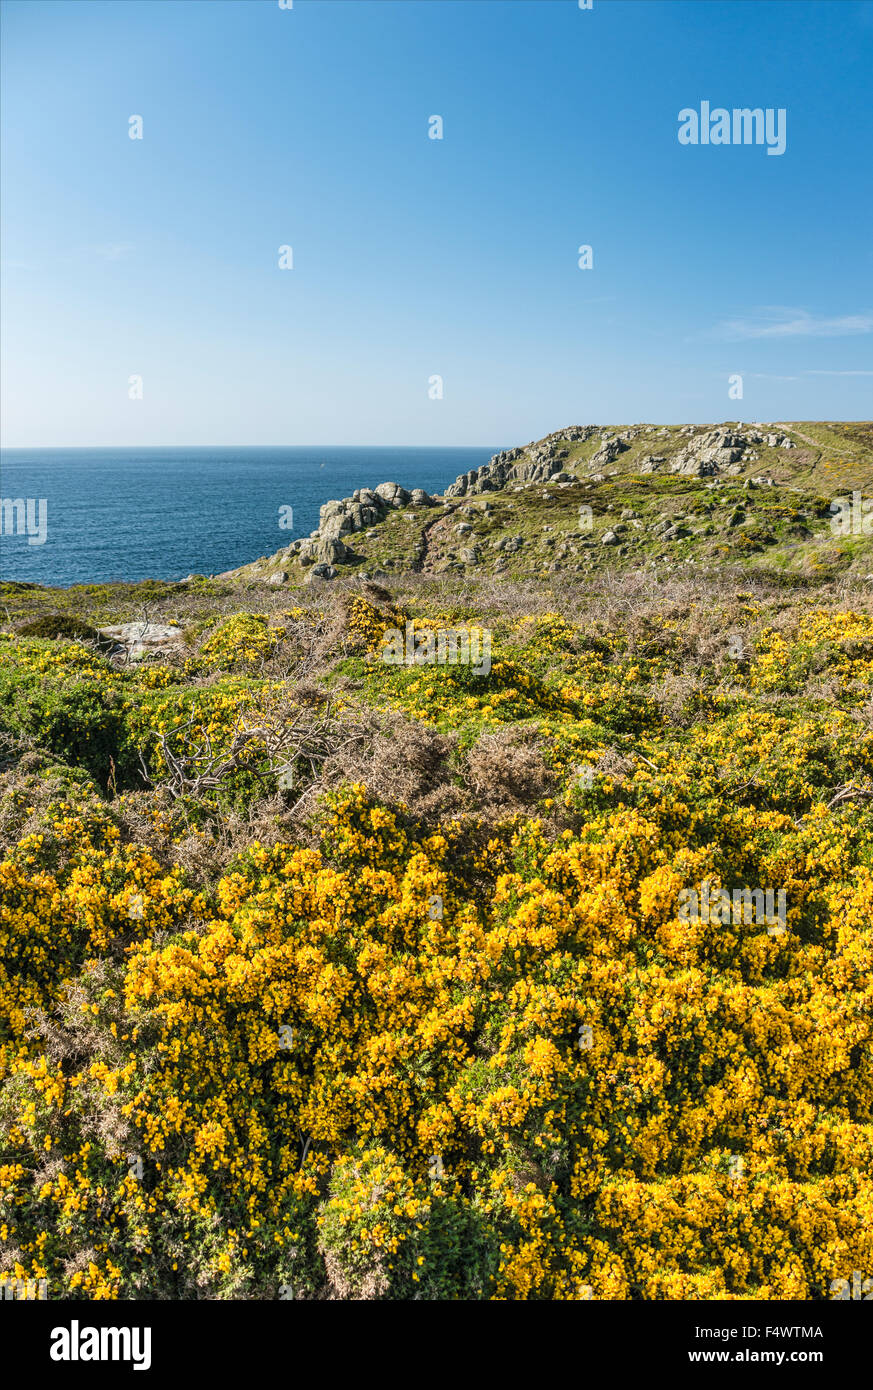 Yellow Gorse flower in a scenic coastal landscape at Lands End, Cornwall, England, UK | Gelbe Stechginster Buesche - Stock Image